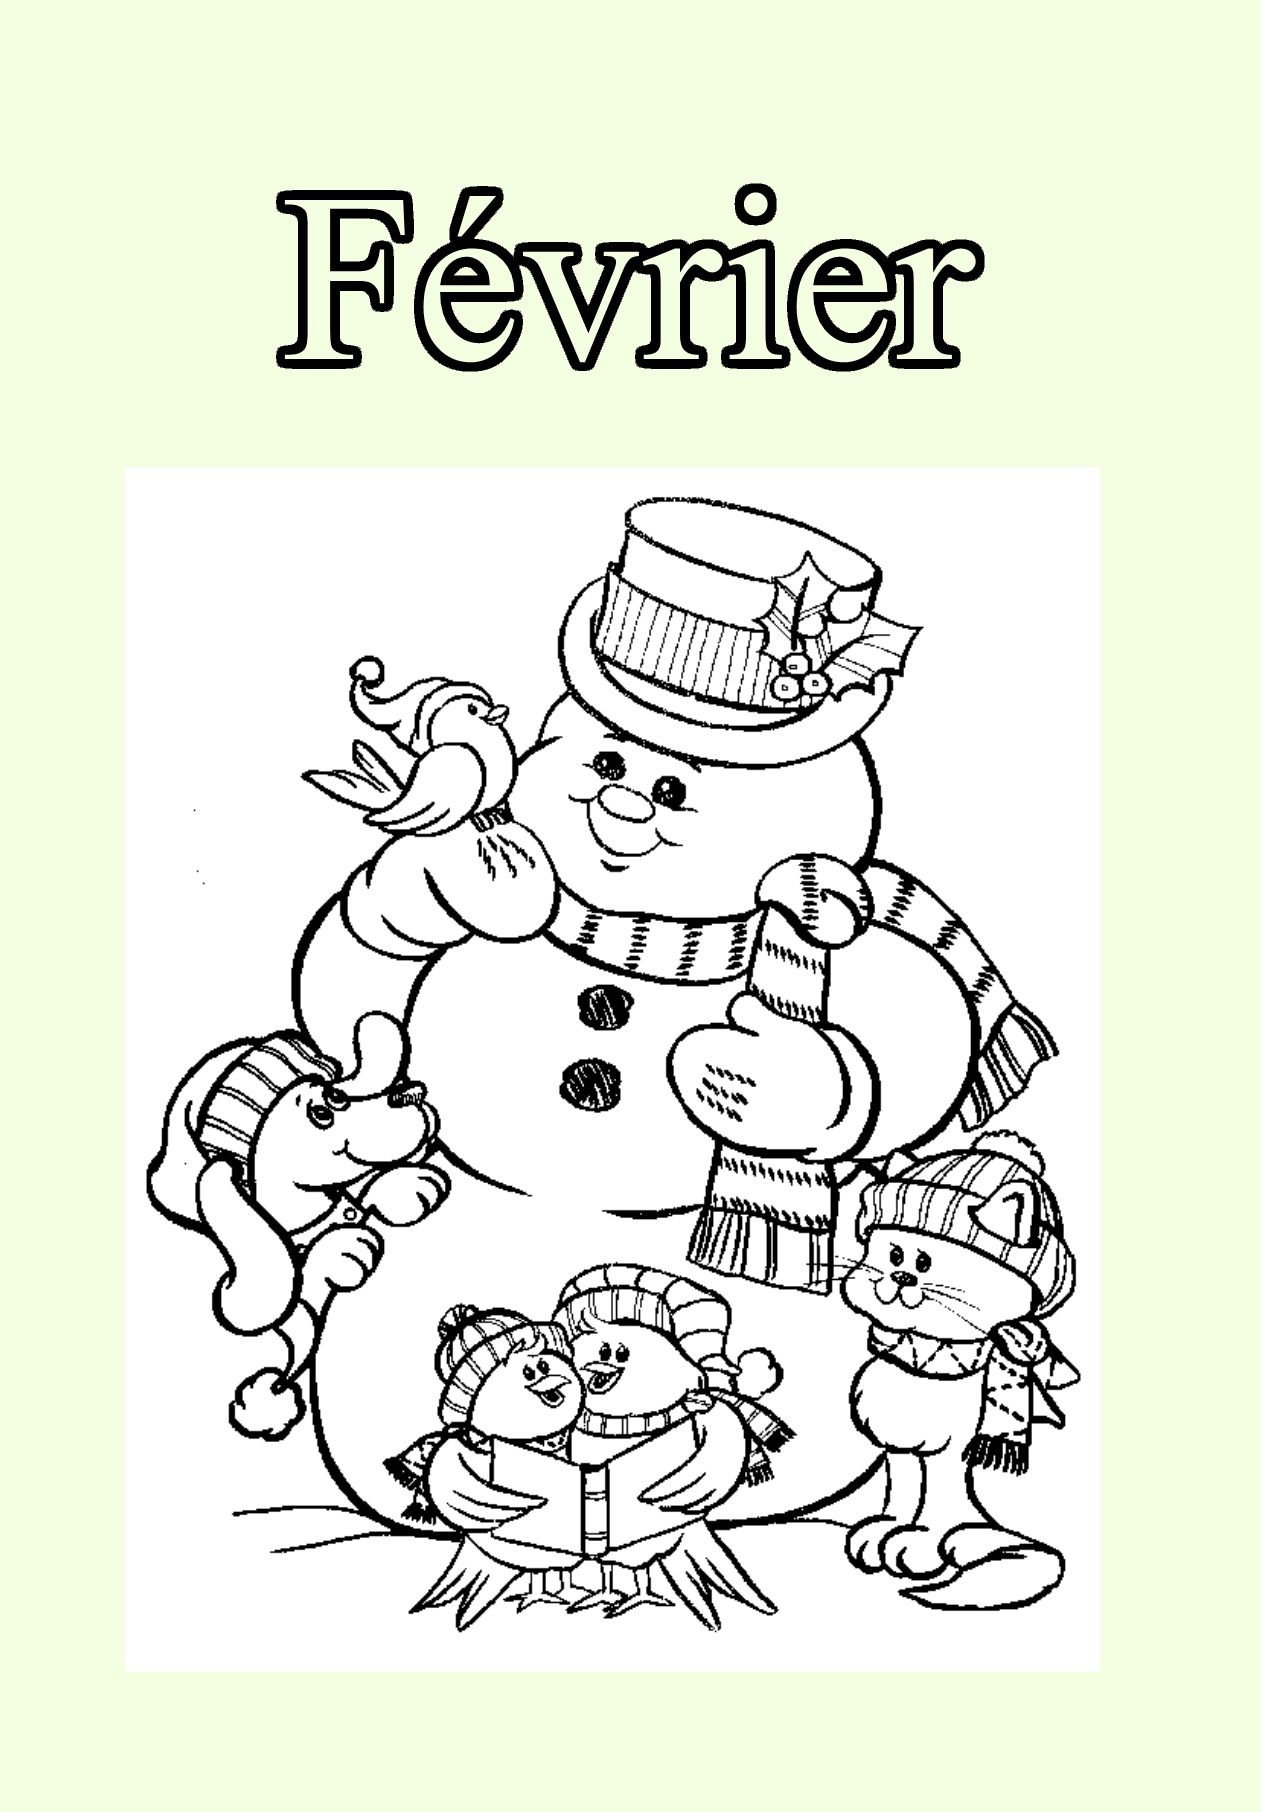 Month coloring page with few details for kids